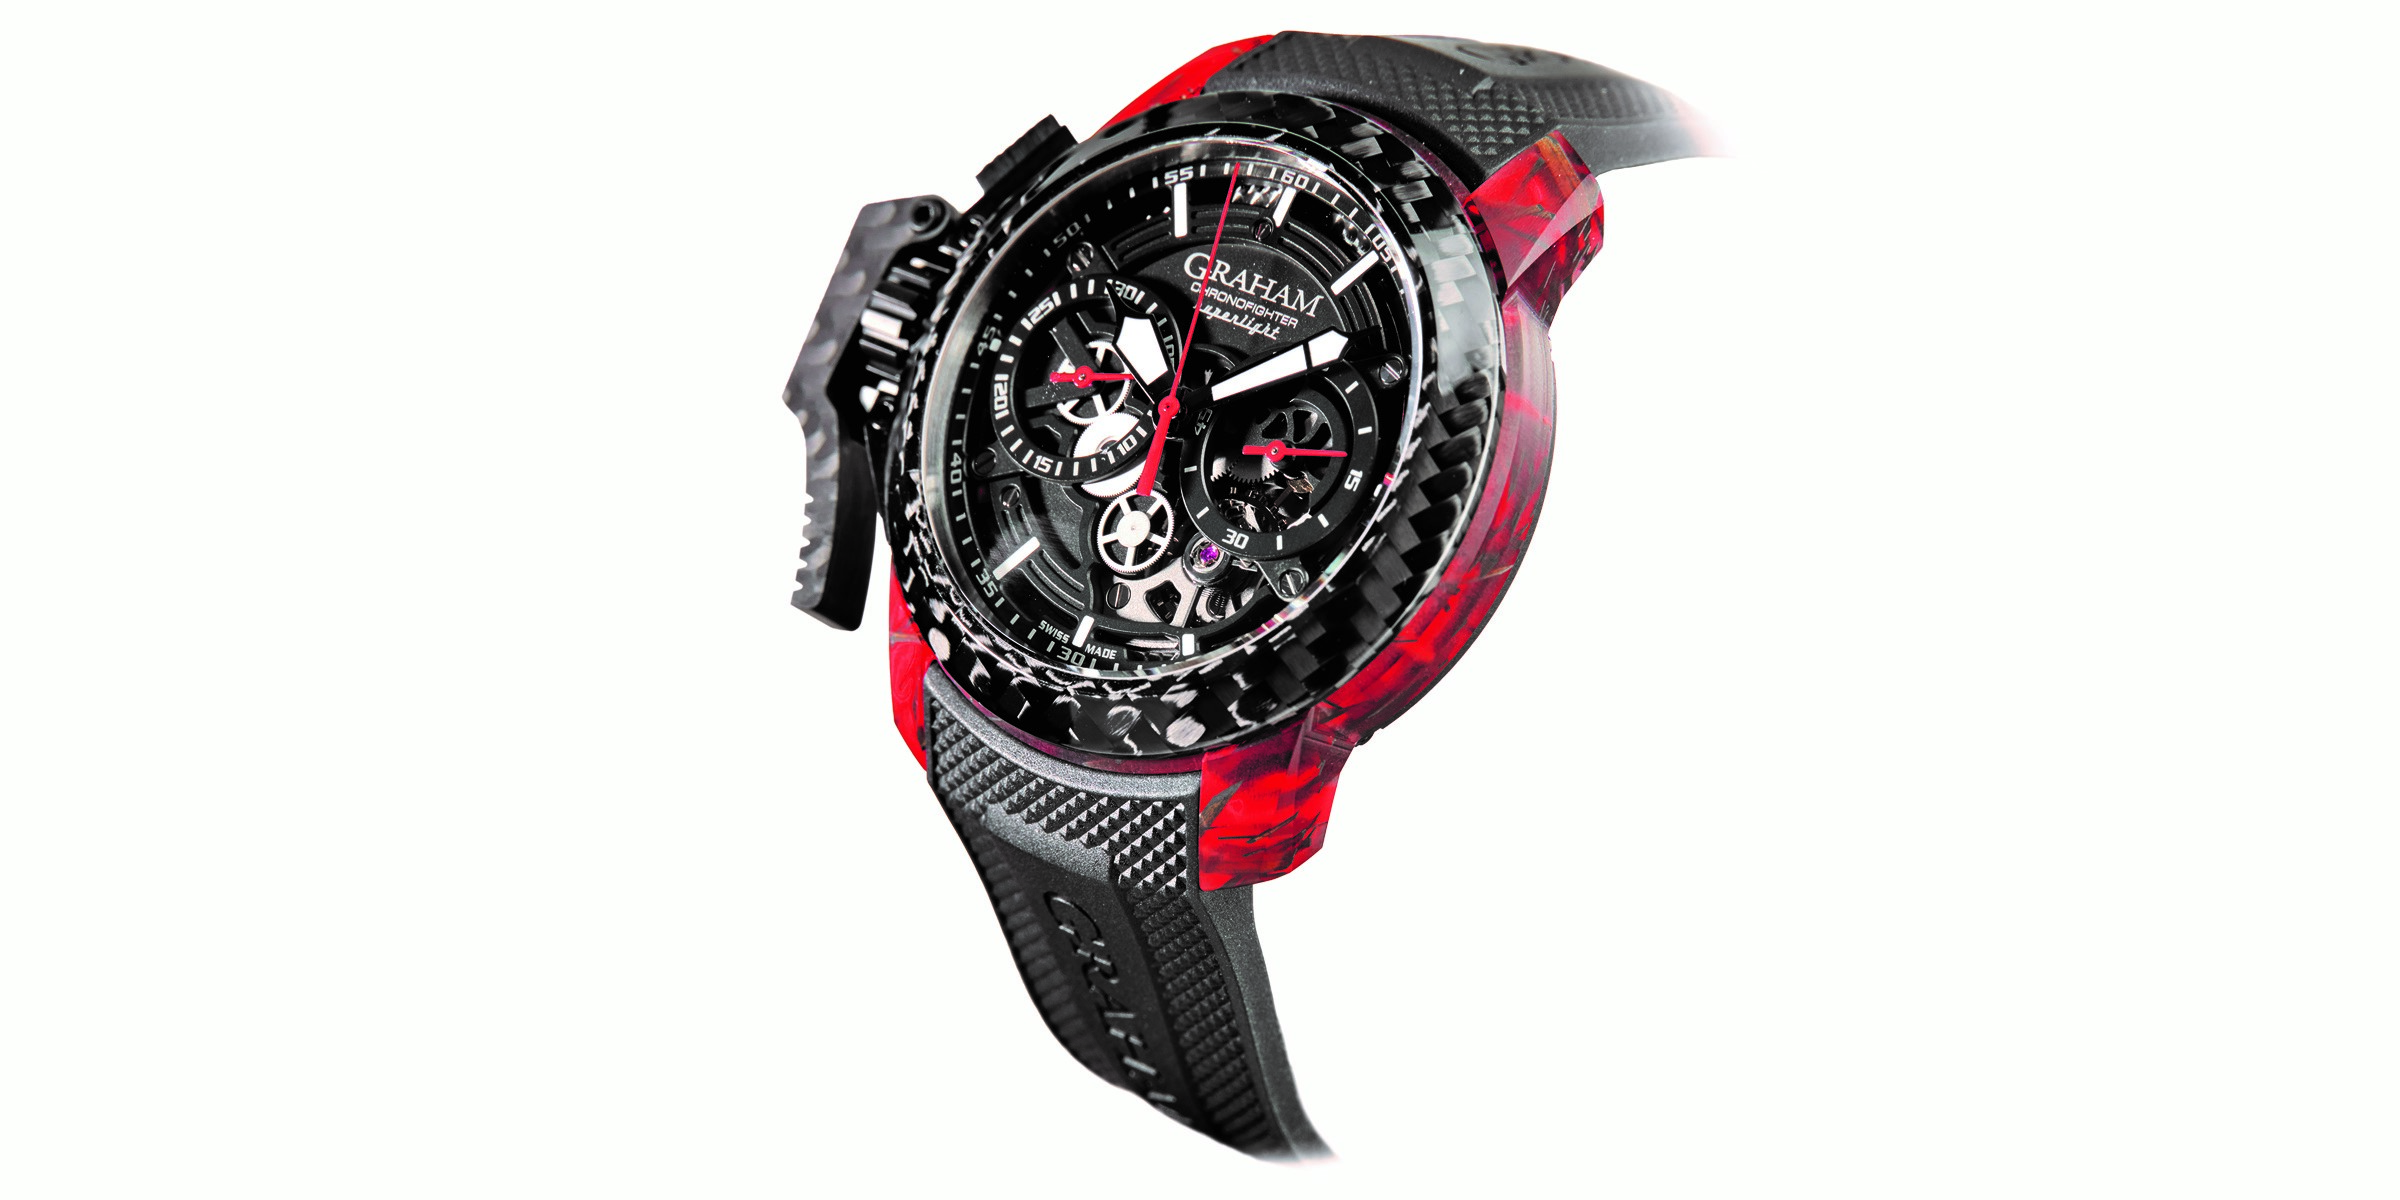 New Graham superlight carbon skeleton watch weighs less than 100 grams